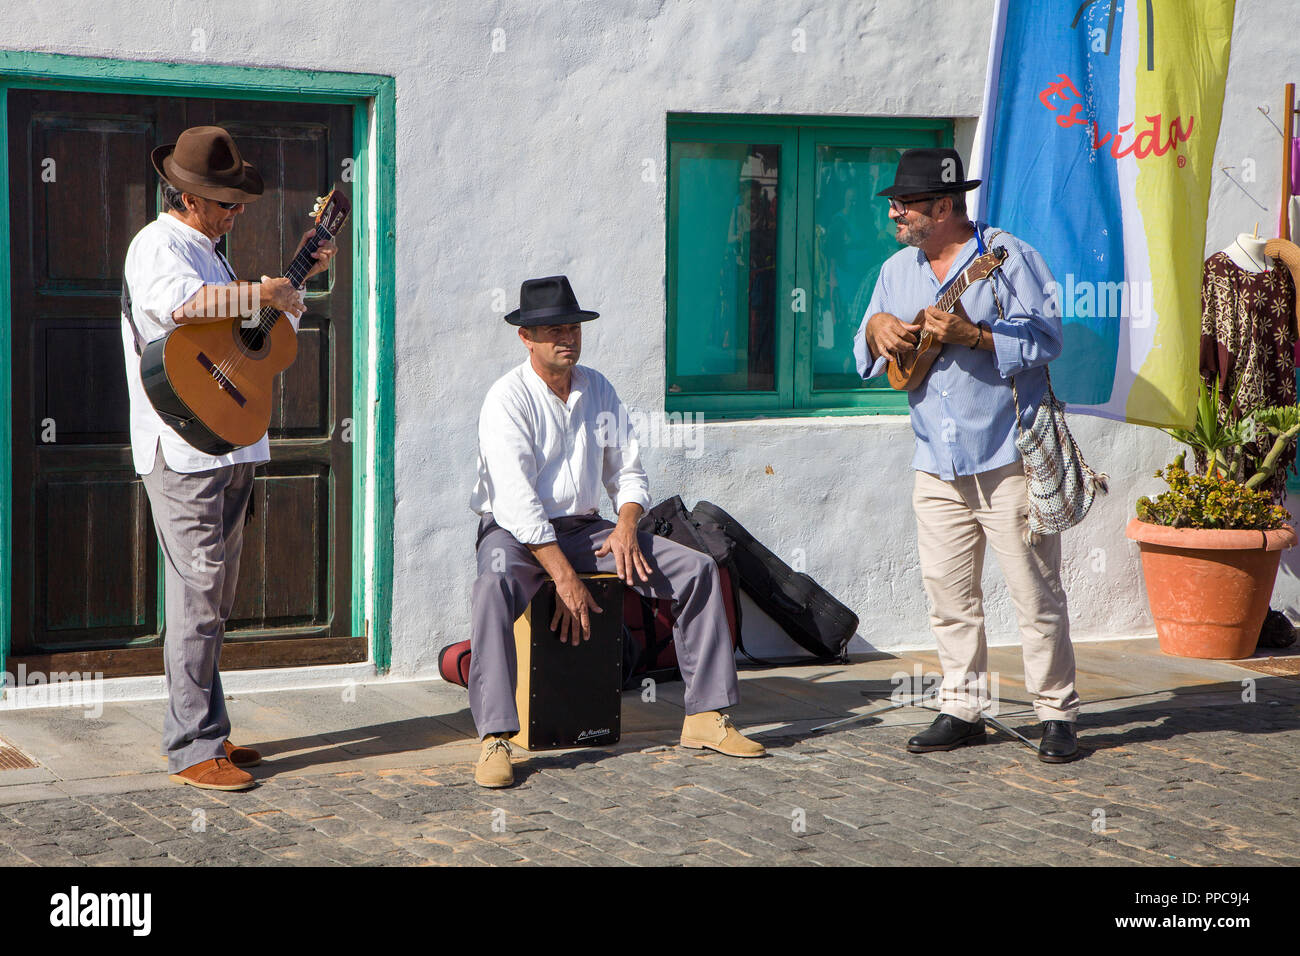 Street musician on the weekly Sunday market in Teguise, Lanzarote, Canary Islands, Spain - Stock Image